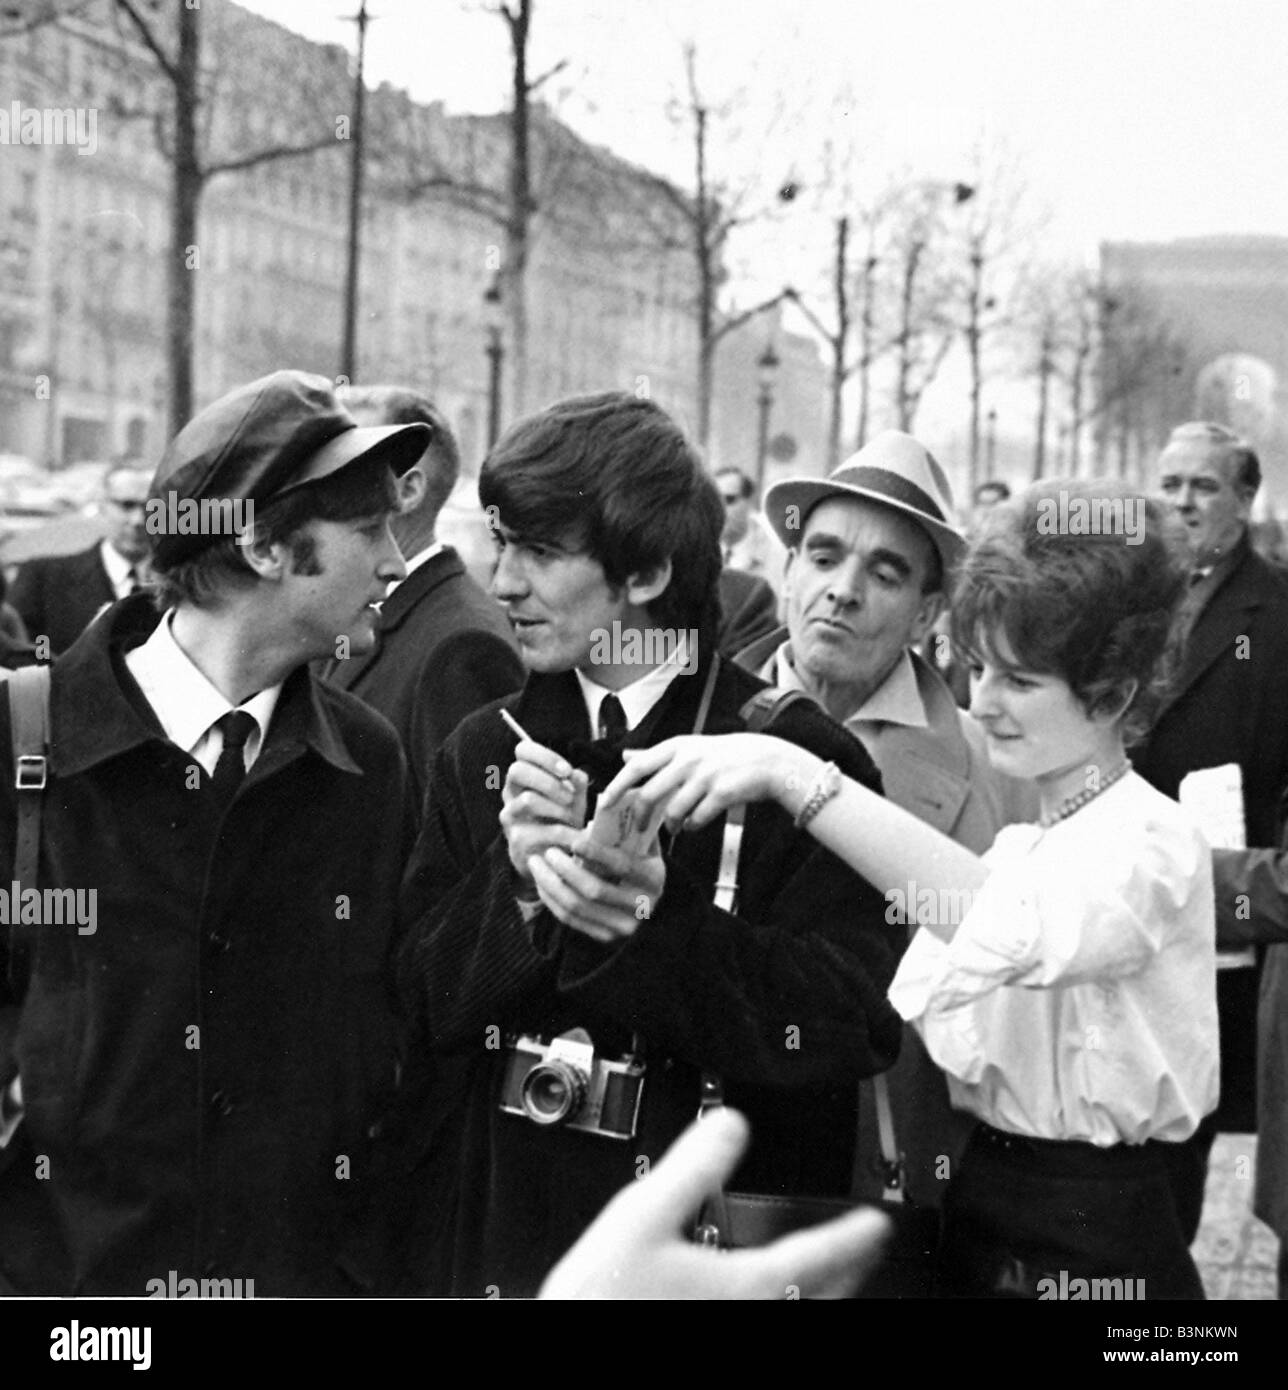 Beatles Files 1964 John Lennon George Harrison Sign Autographs For Fans During The Visit To Paris January